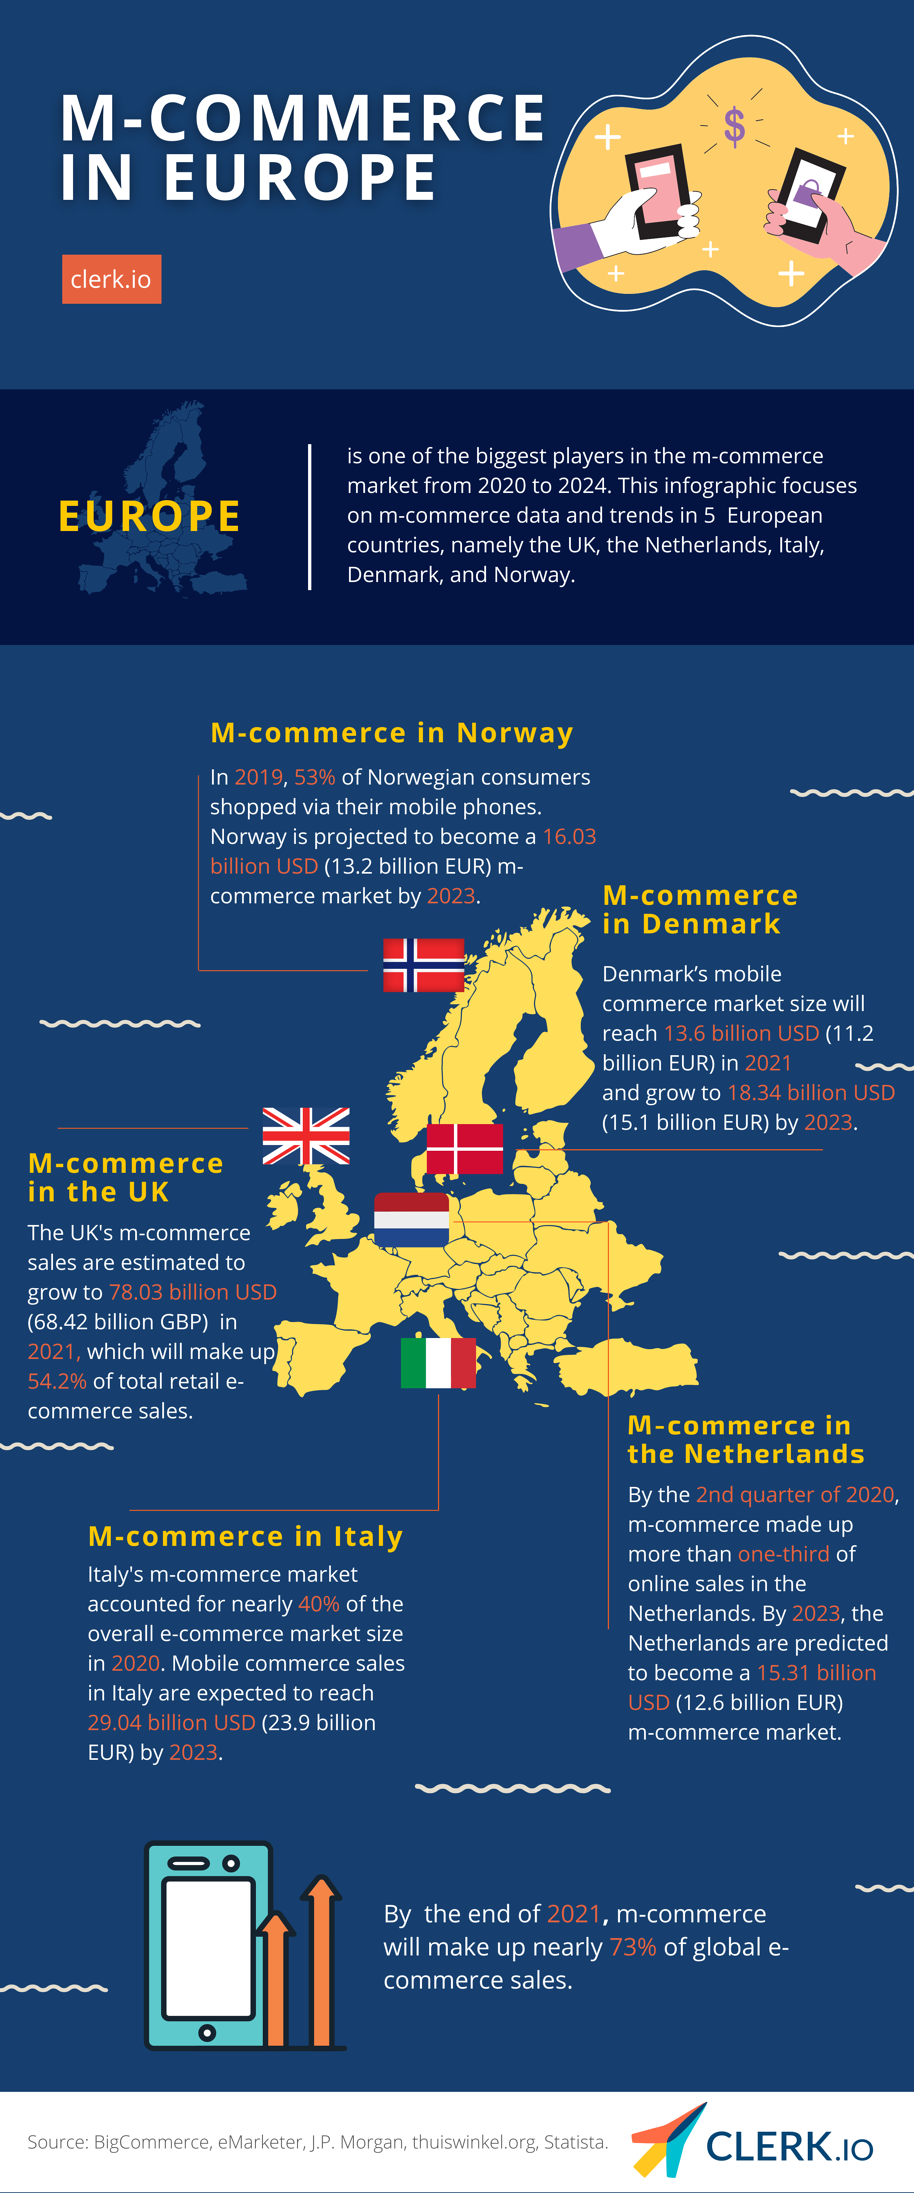 M-commerce in Europe